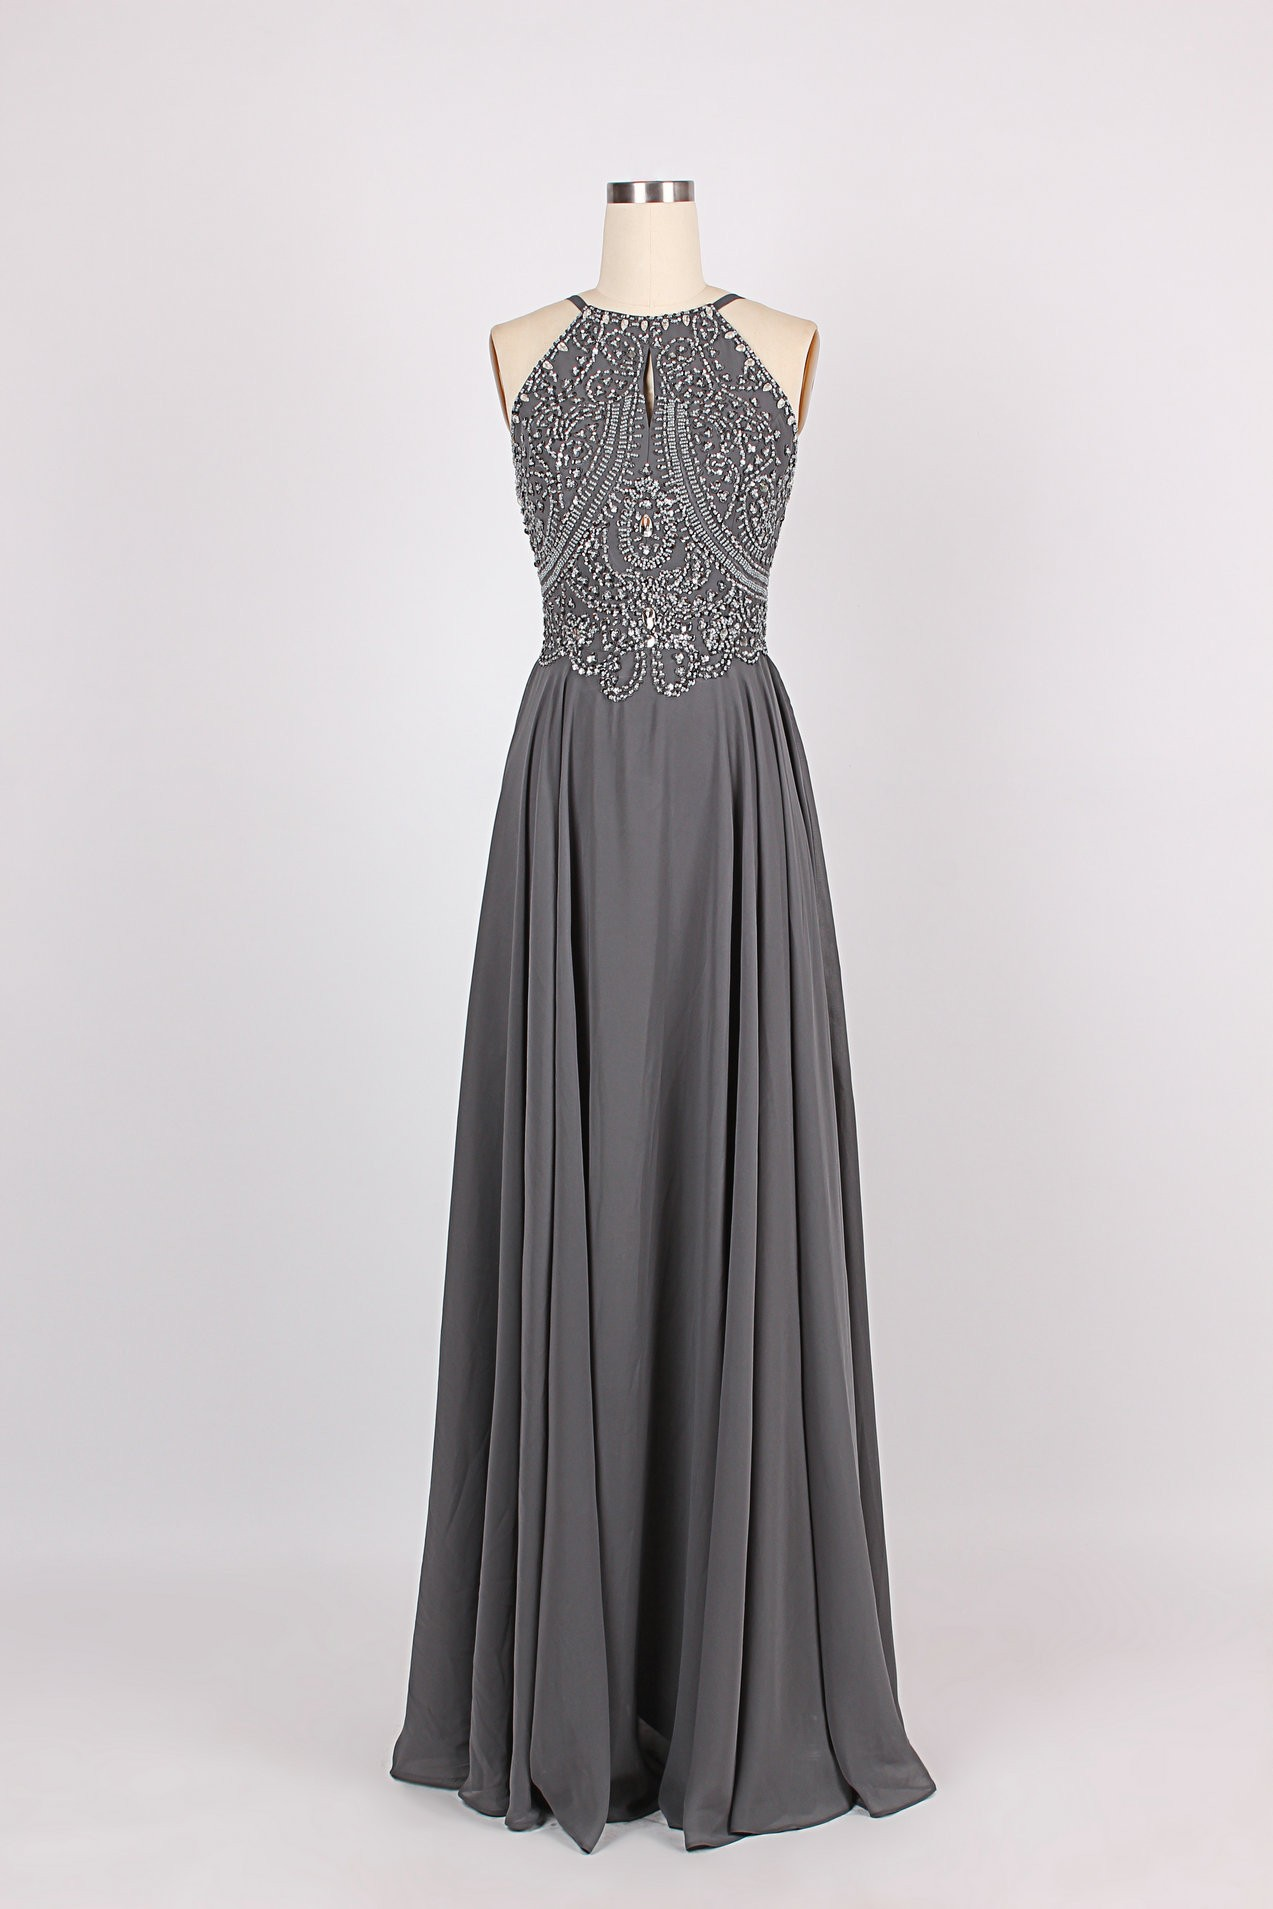 9380489a1d5 Spaghetti strap beading bare back chiffon prom dress beading prom dress  fashion evening gown